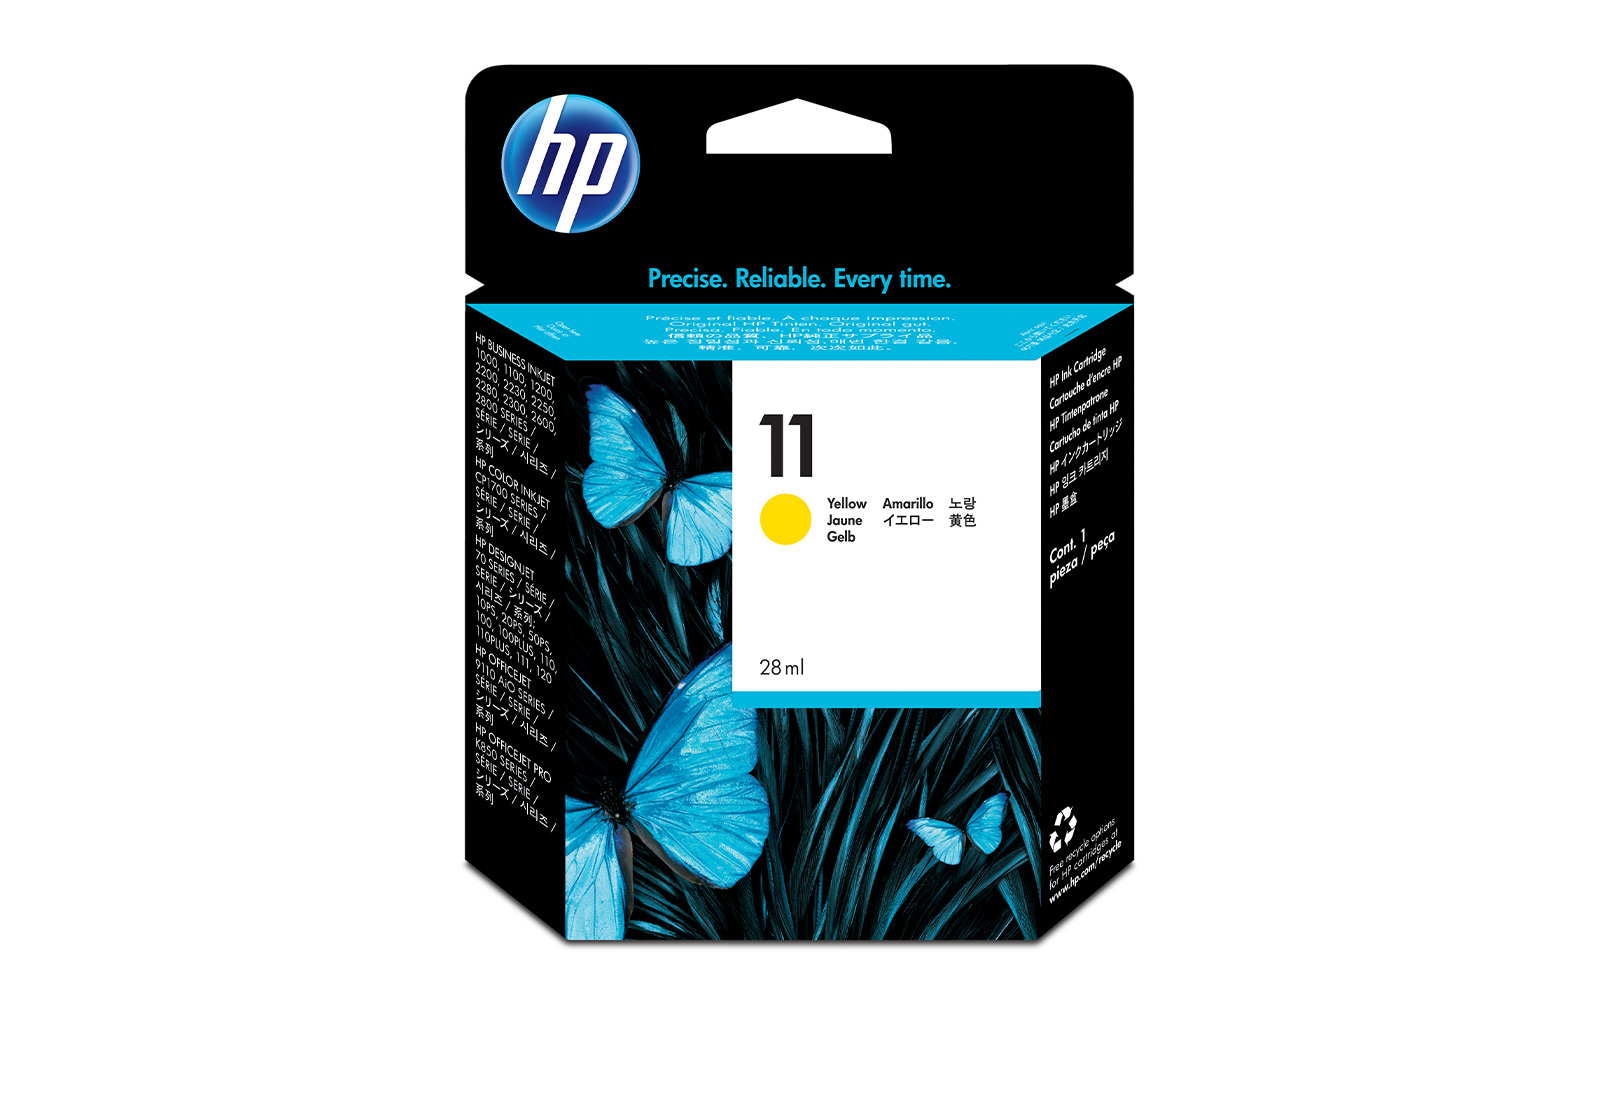 HP Business InkJet 1200 DTN 11 Yellow Ink Cartridge Original HP C4838A Nr